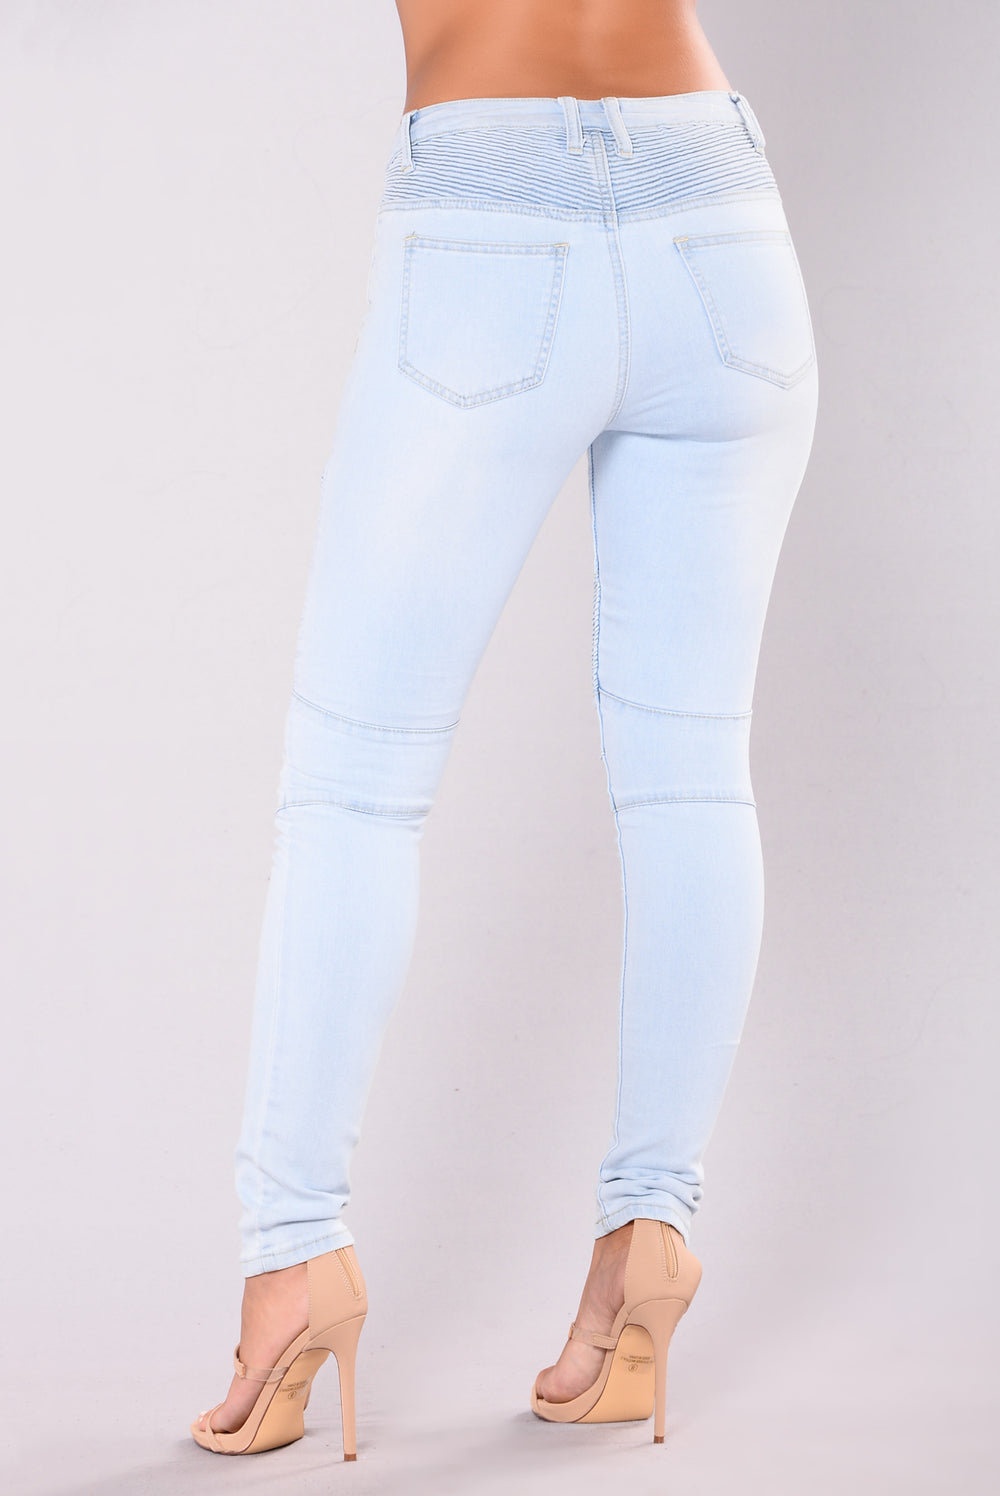 On The Highway Moto Jeans - Light Blue